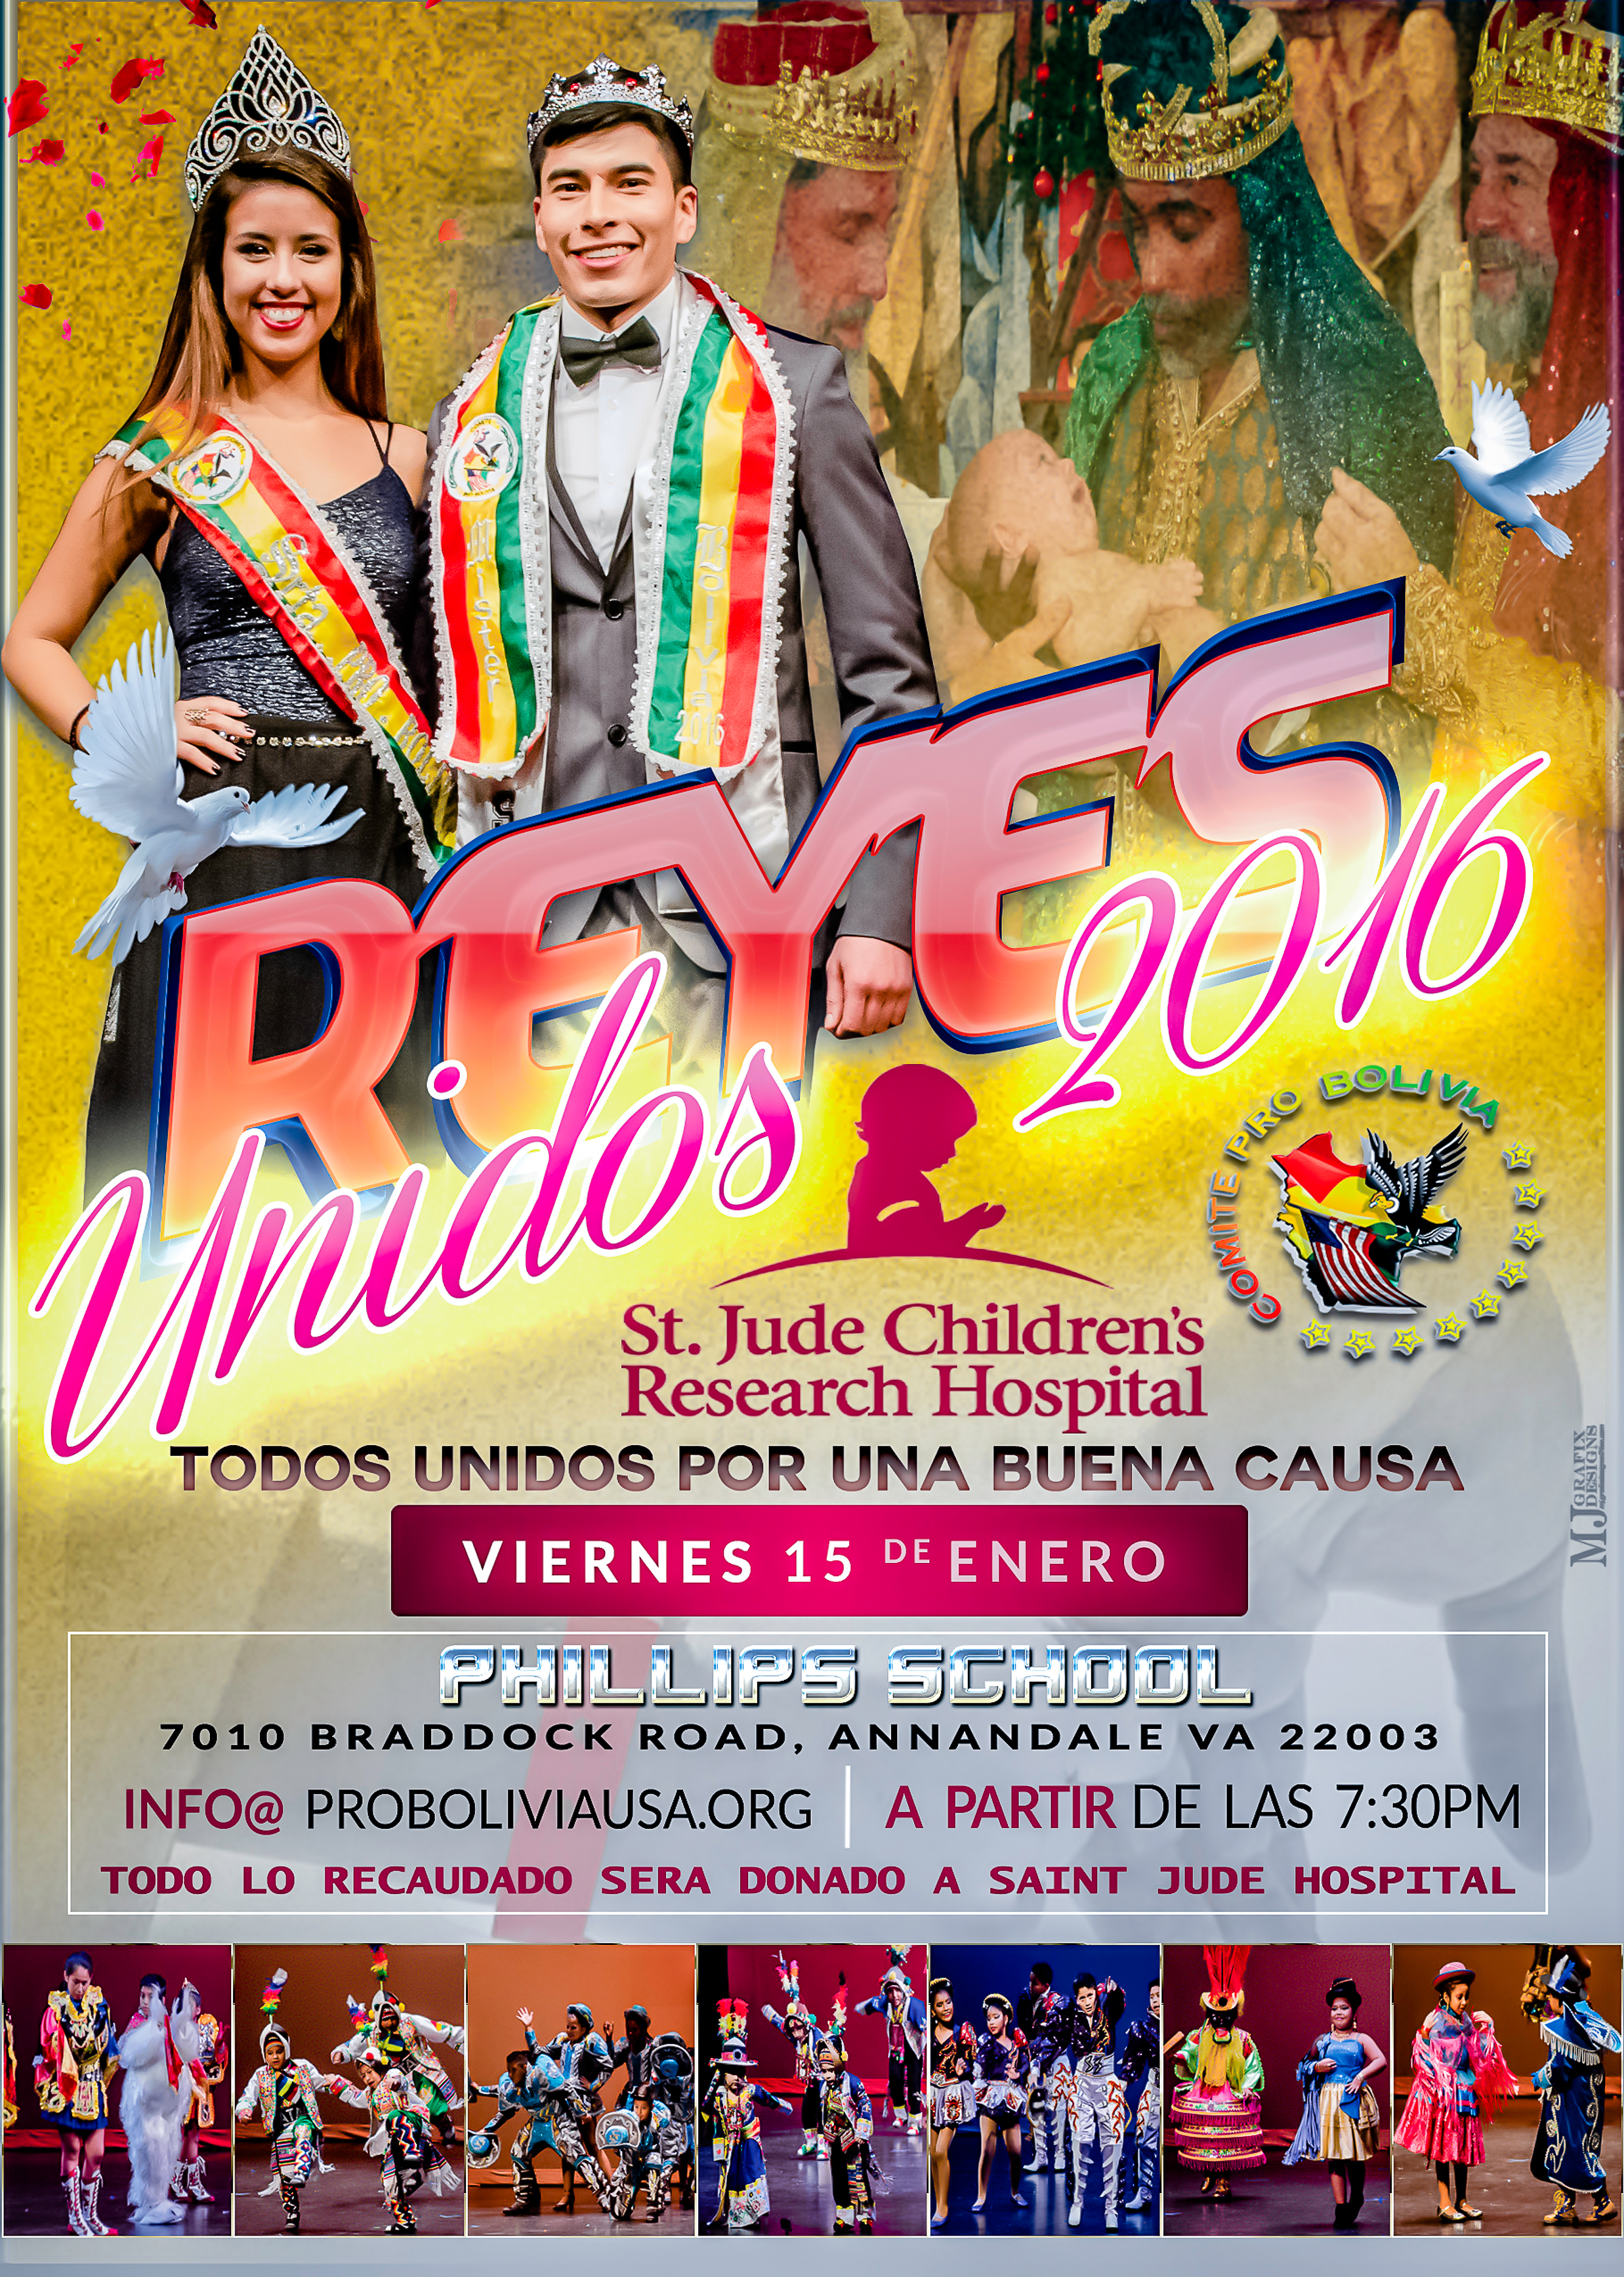 Reyes Unidos Event: January 15, 2016